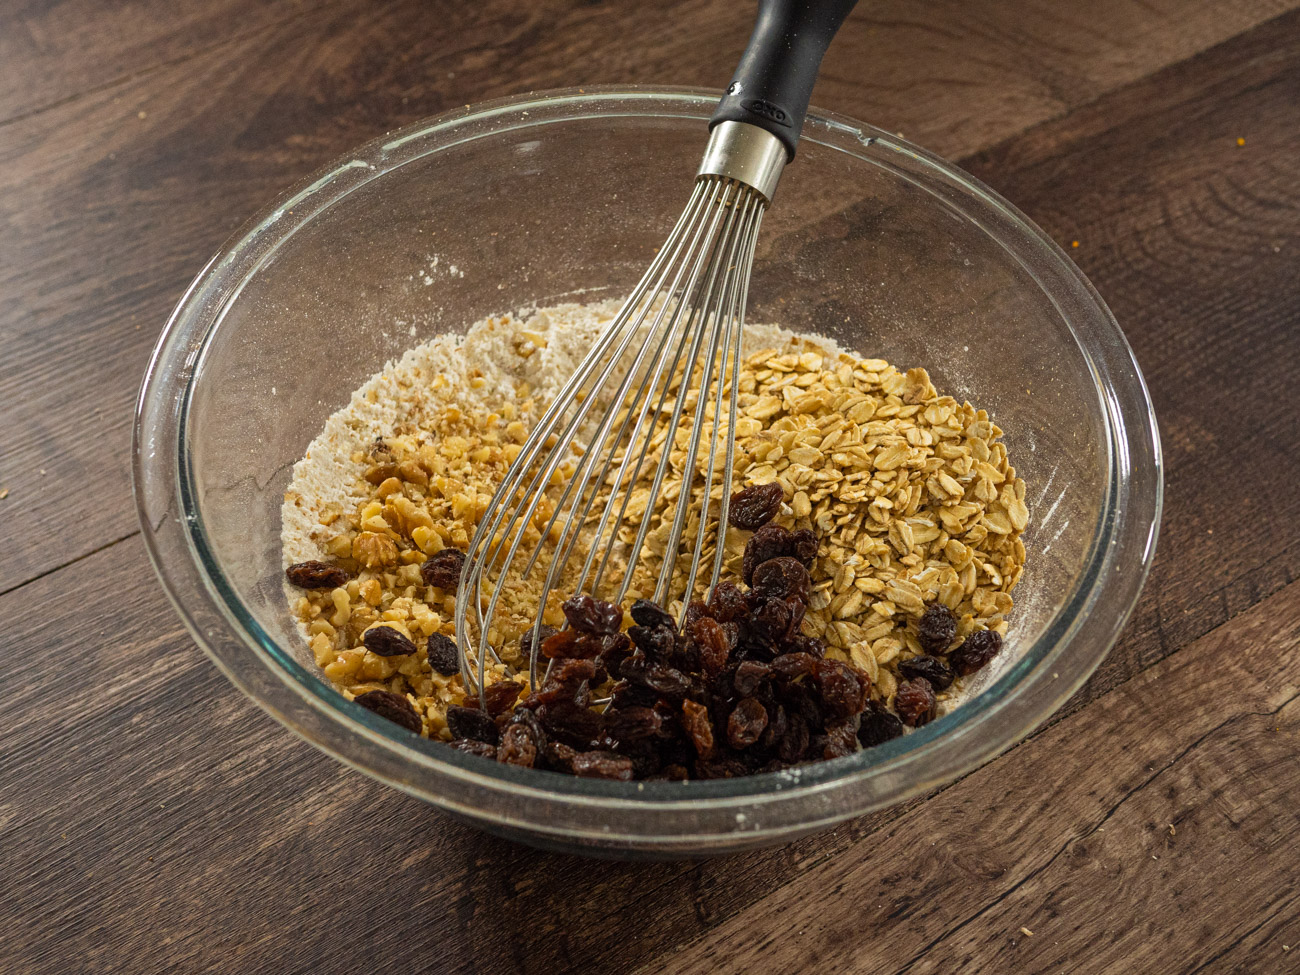 Stir in rolled oats, raisins, and walnuts.